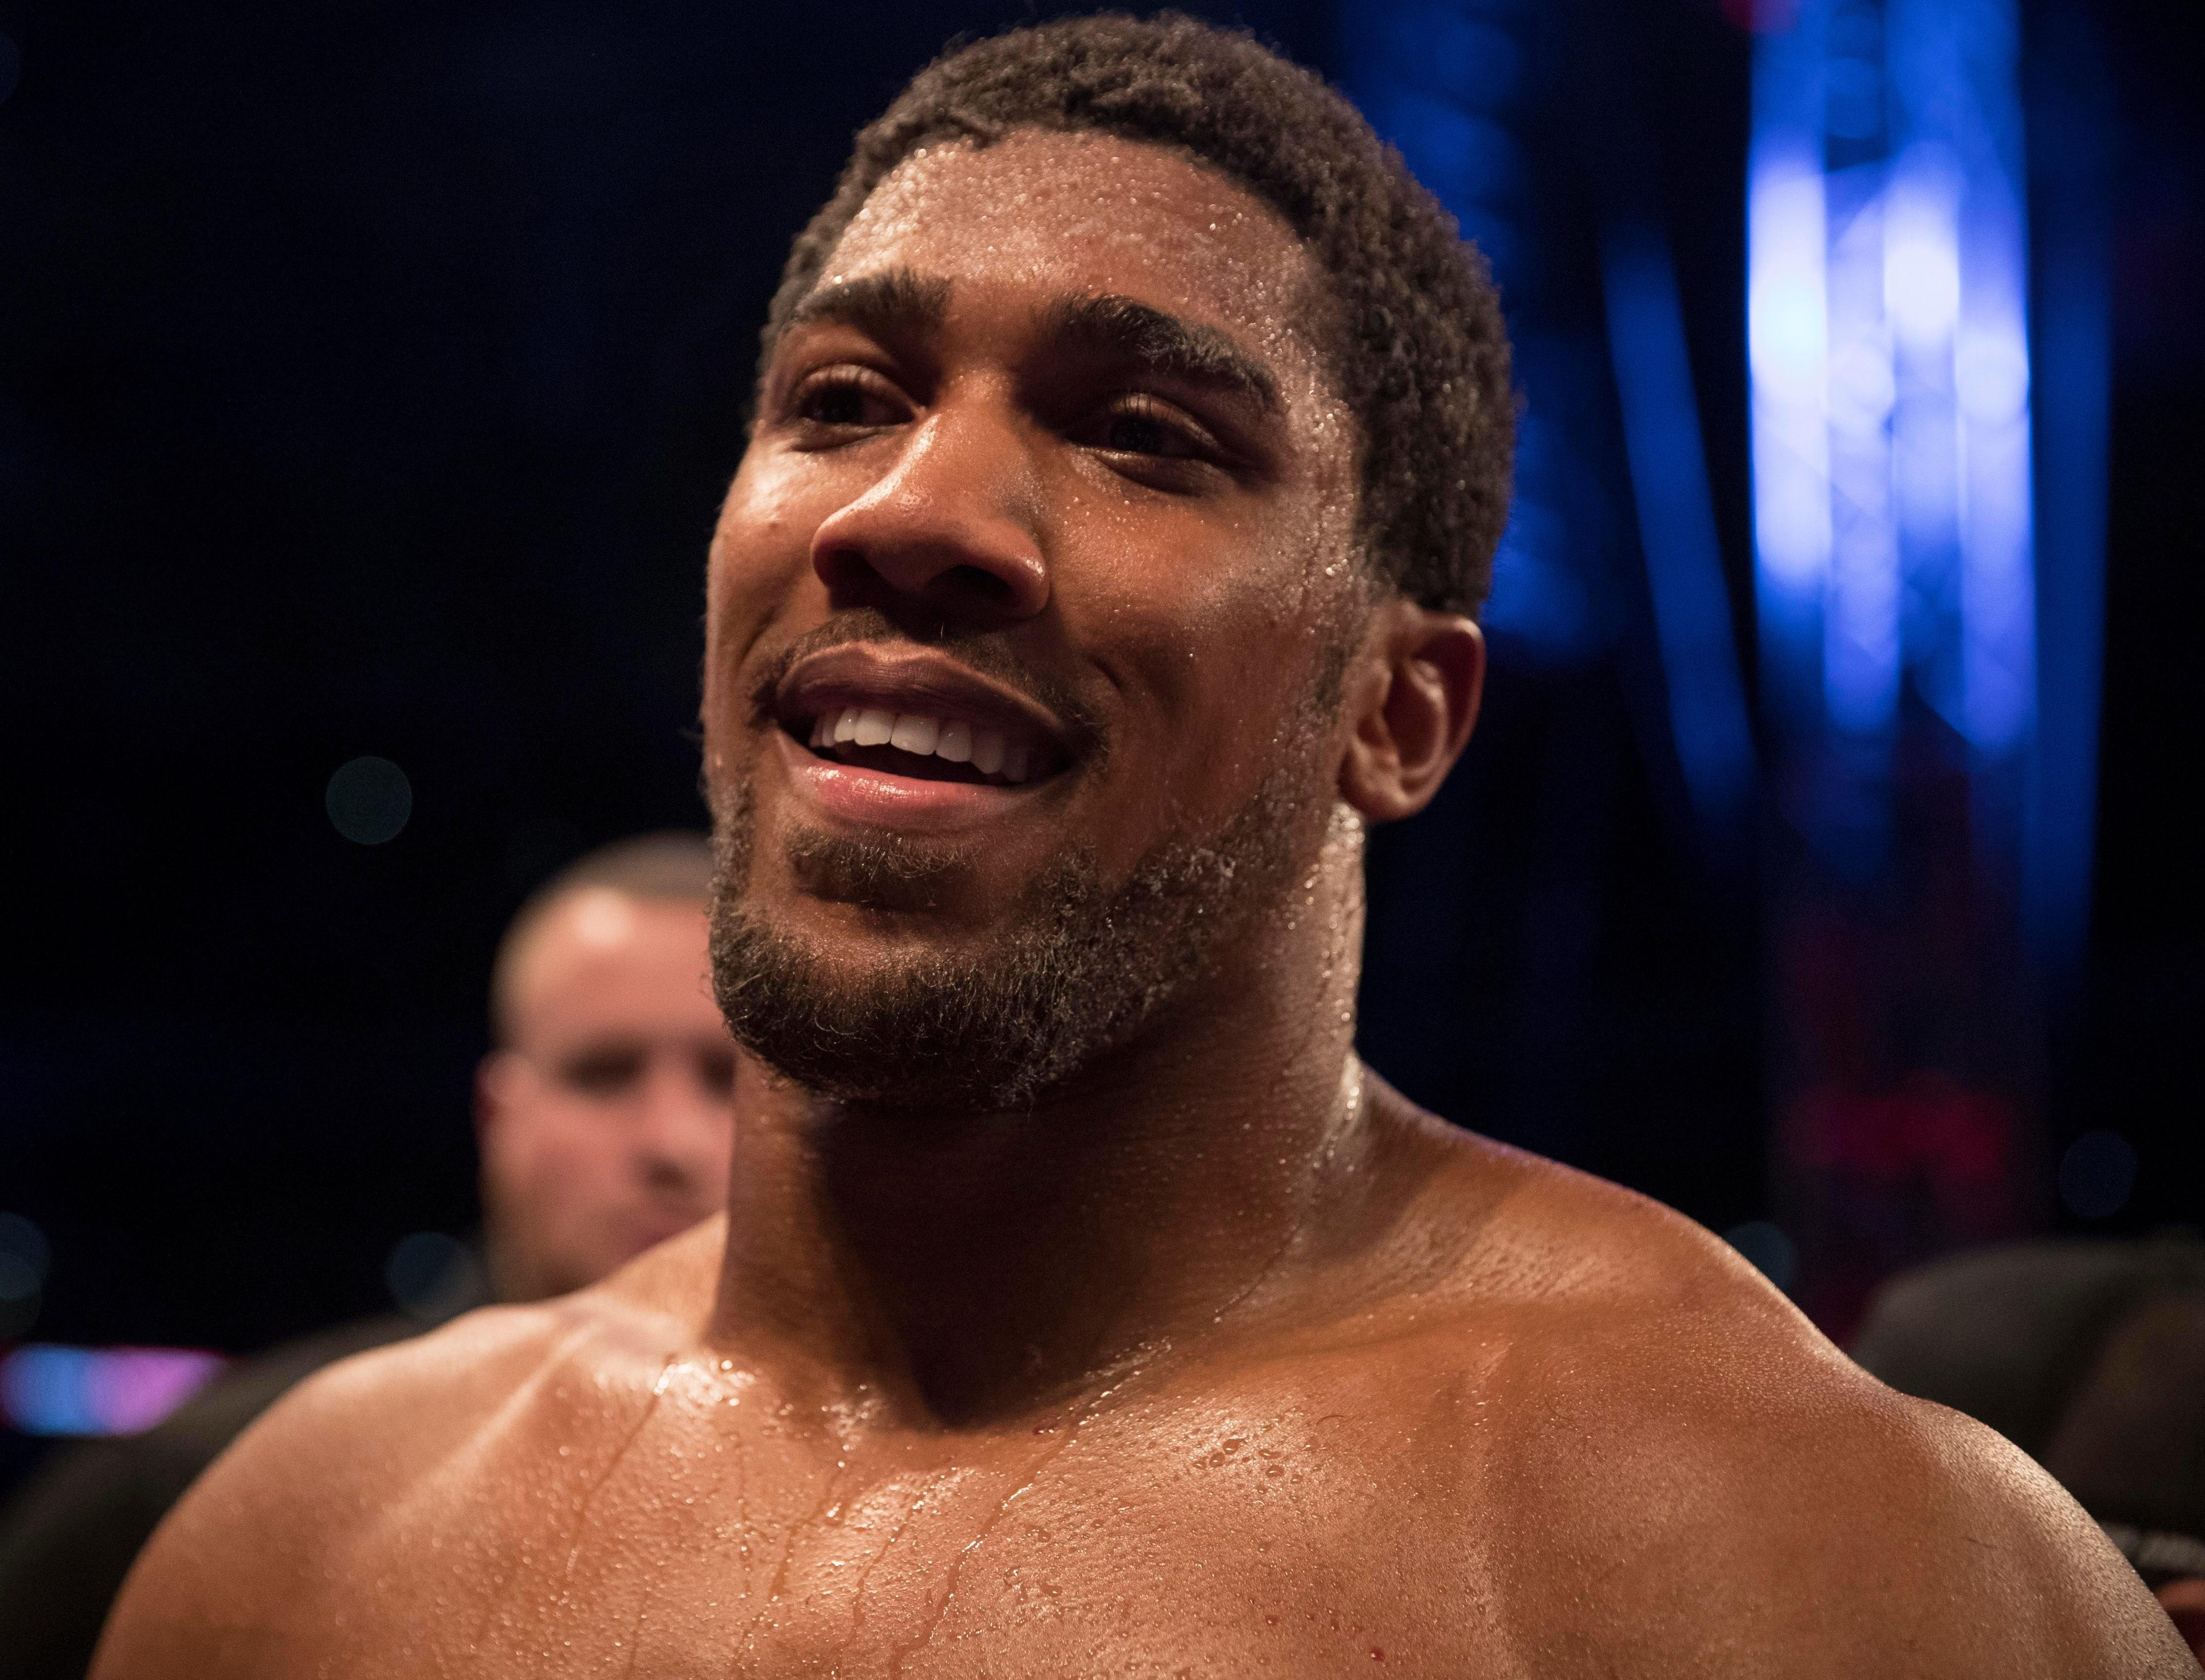 Anthony Joshua is expected to have a rematch against Dillian Whyte or finally seal a deal of a unification scrap against WBC champ Deontay Wilder